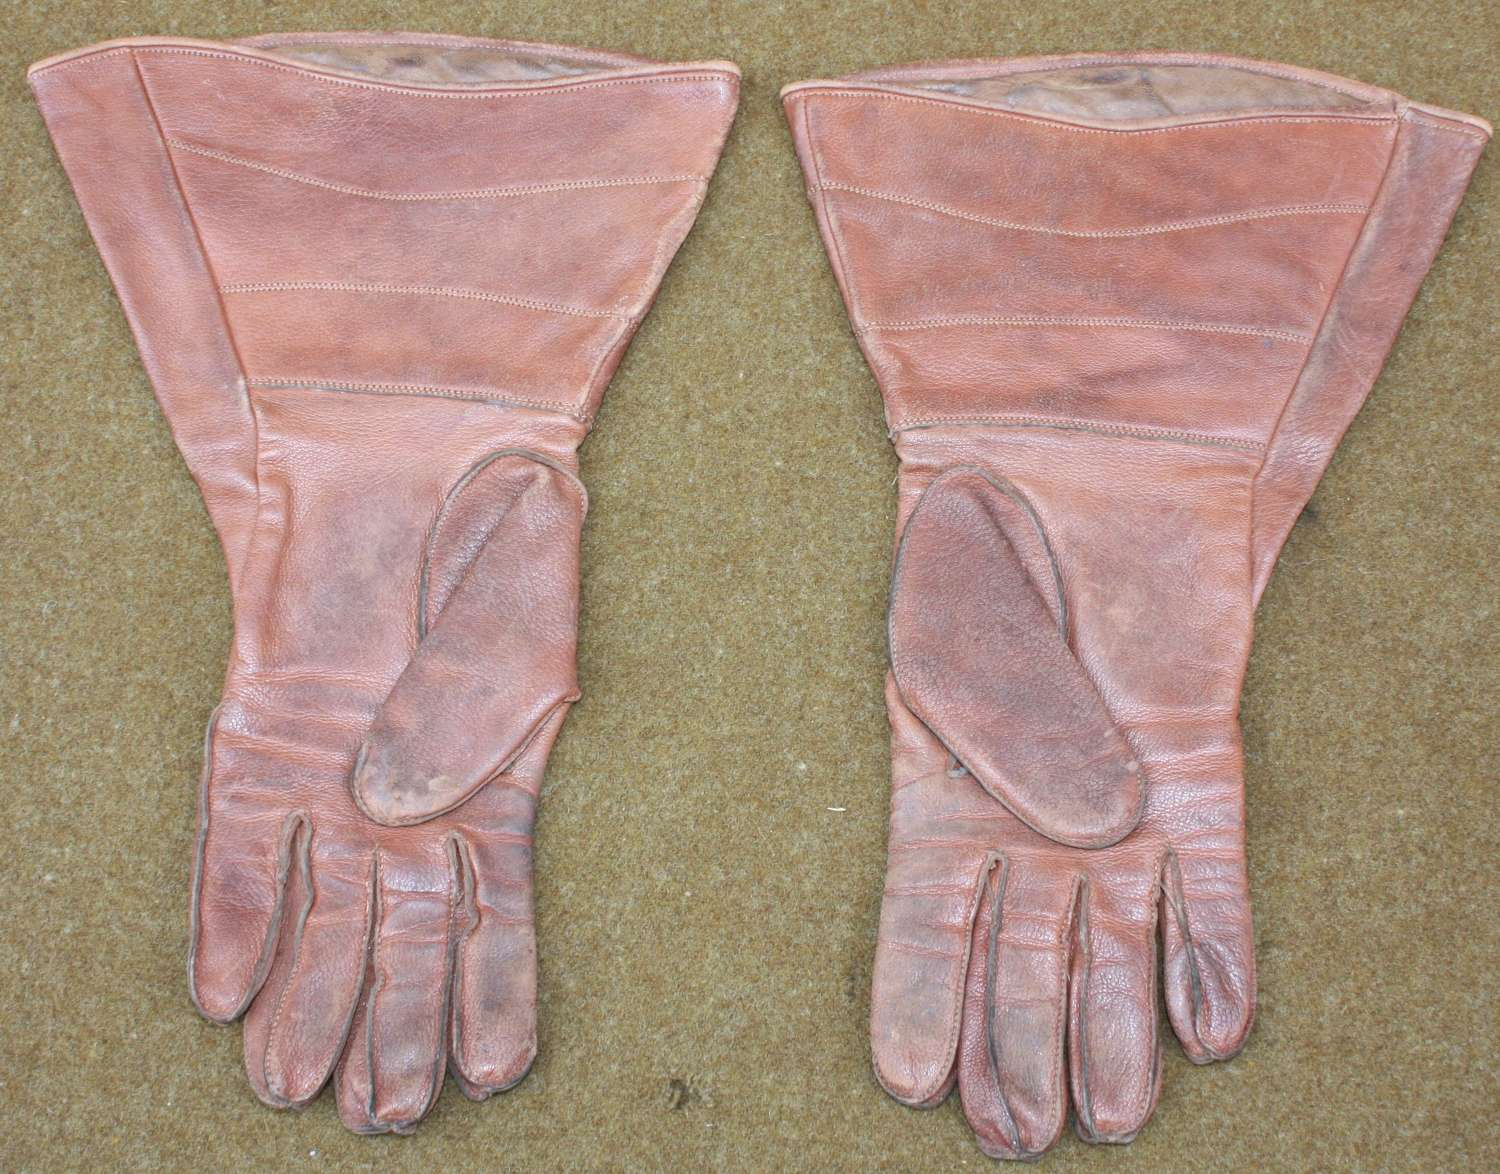 A PAIR OF SIZE 7 1/2 ATS DISPATCH RIDERS GLOVES